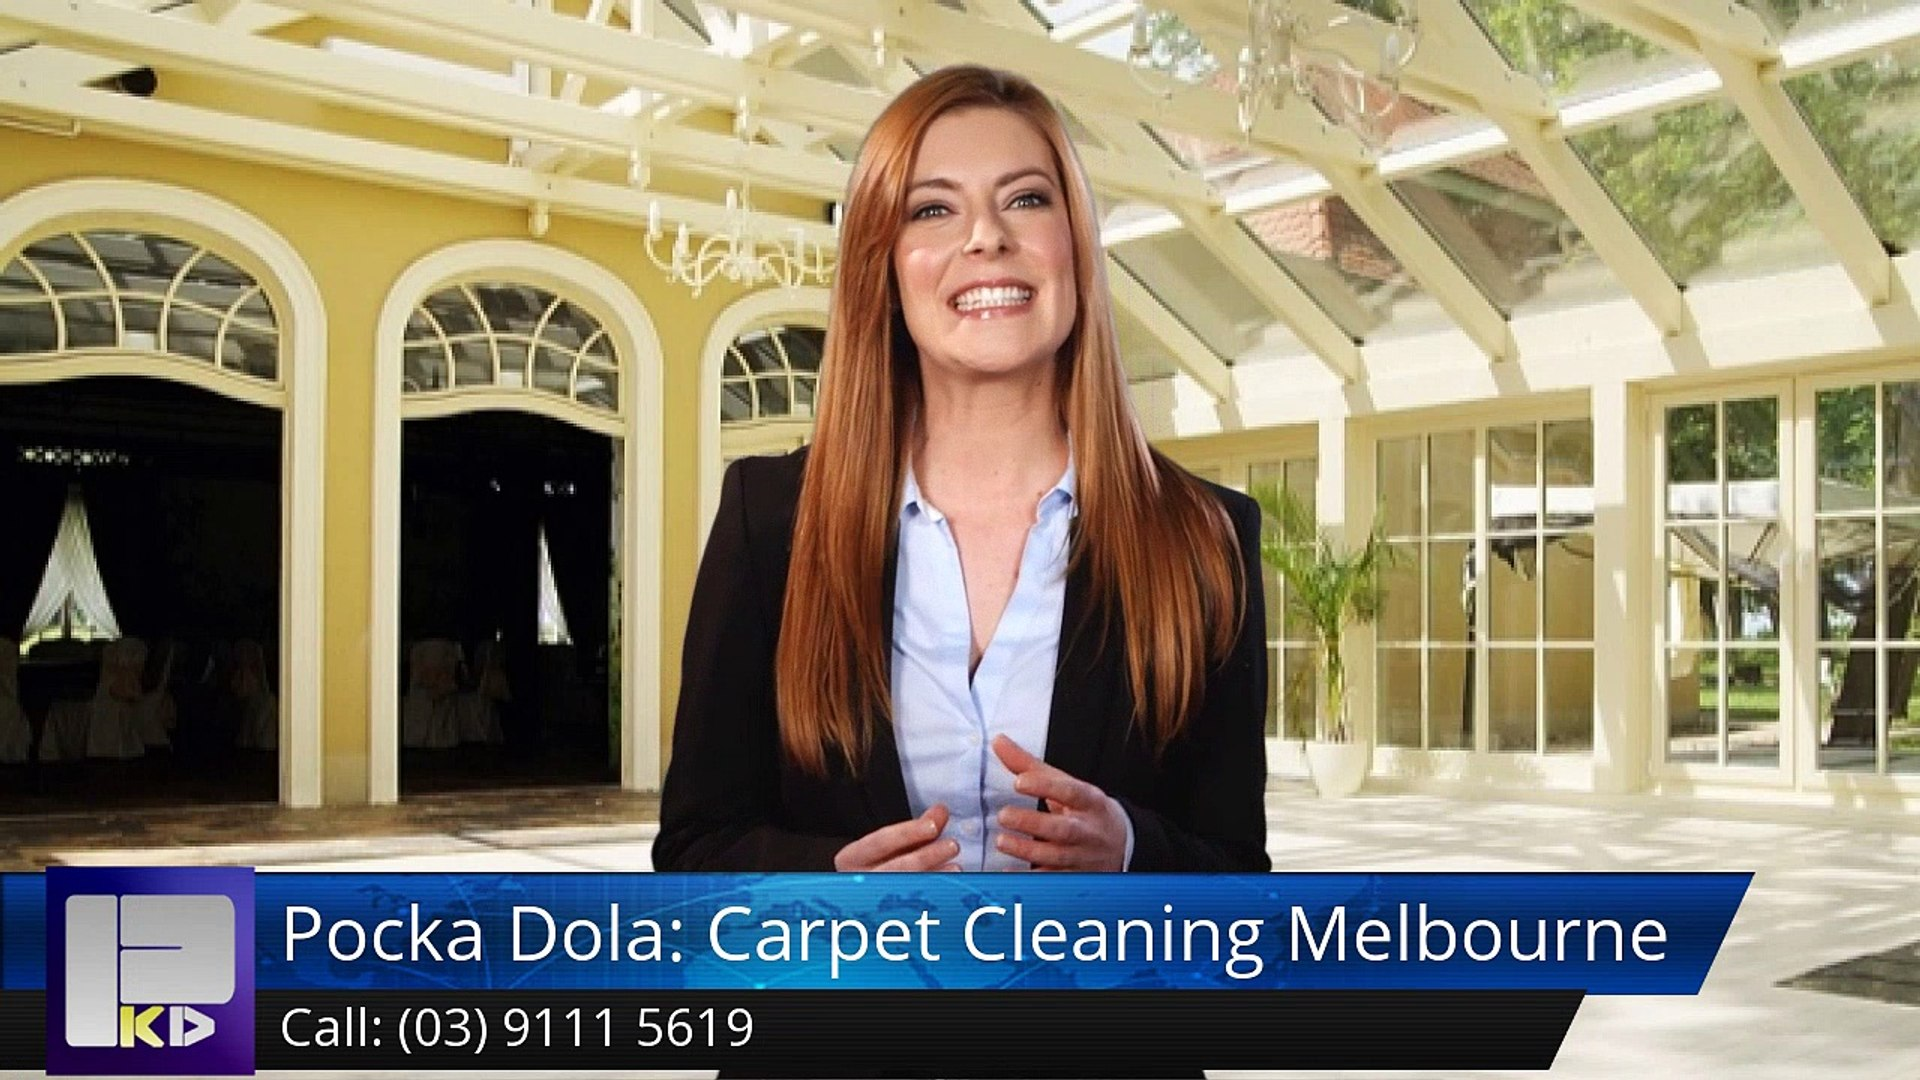 Pocka Dola: Carpet Cleaning Melbourne Heathmont Great 5 Star Review by Stephanie Baker